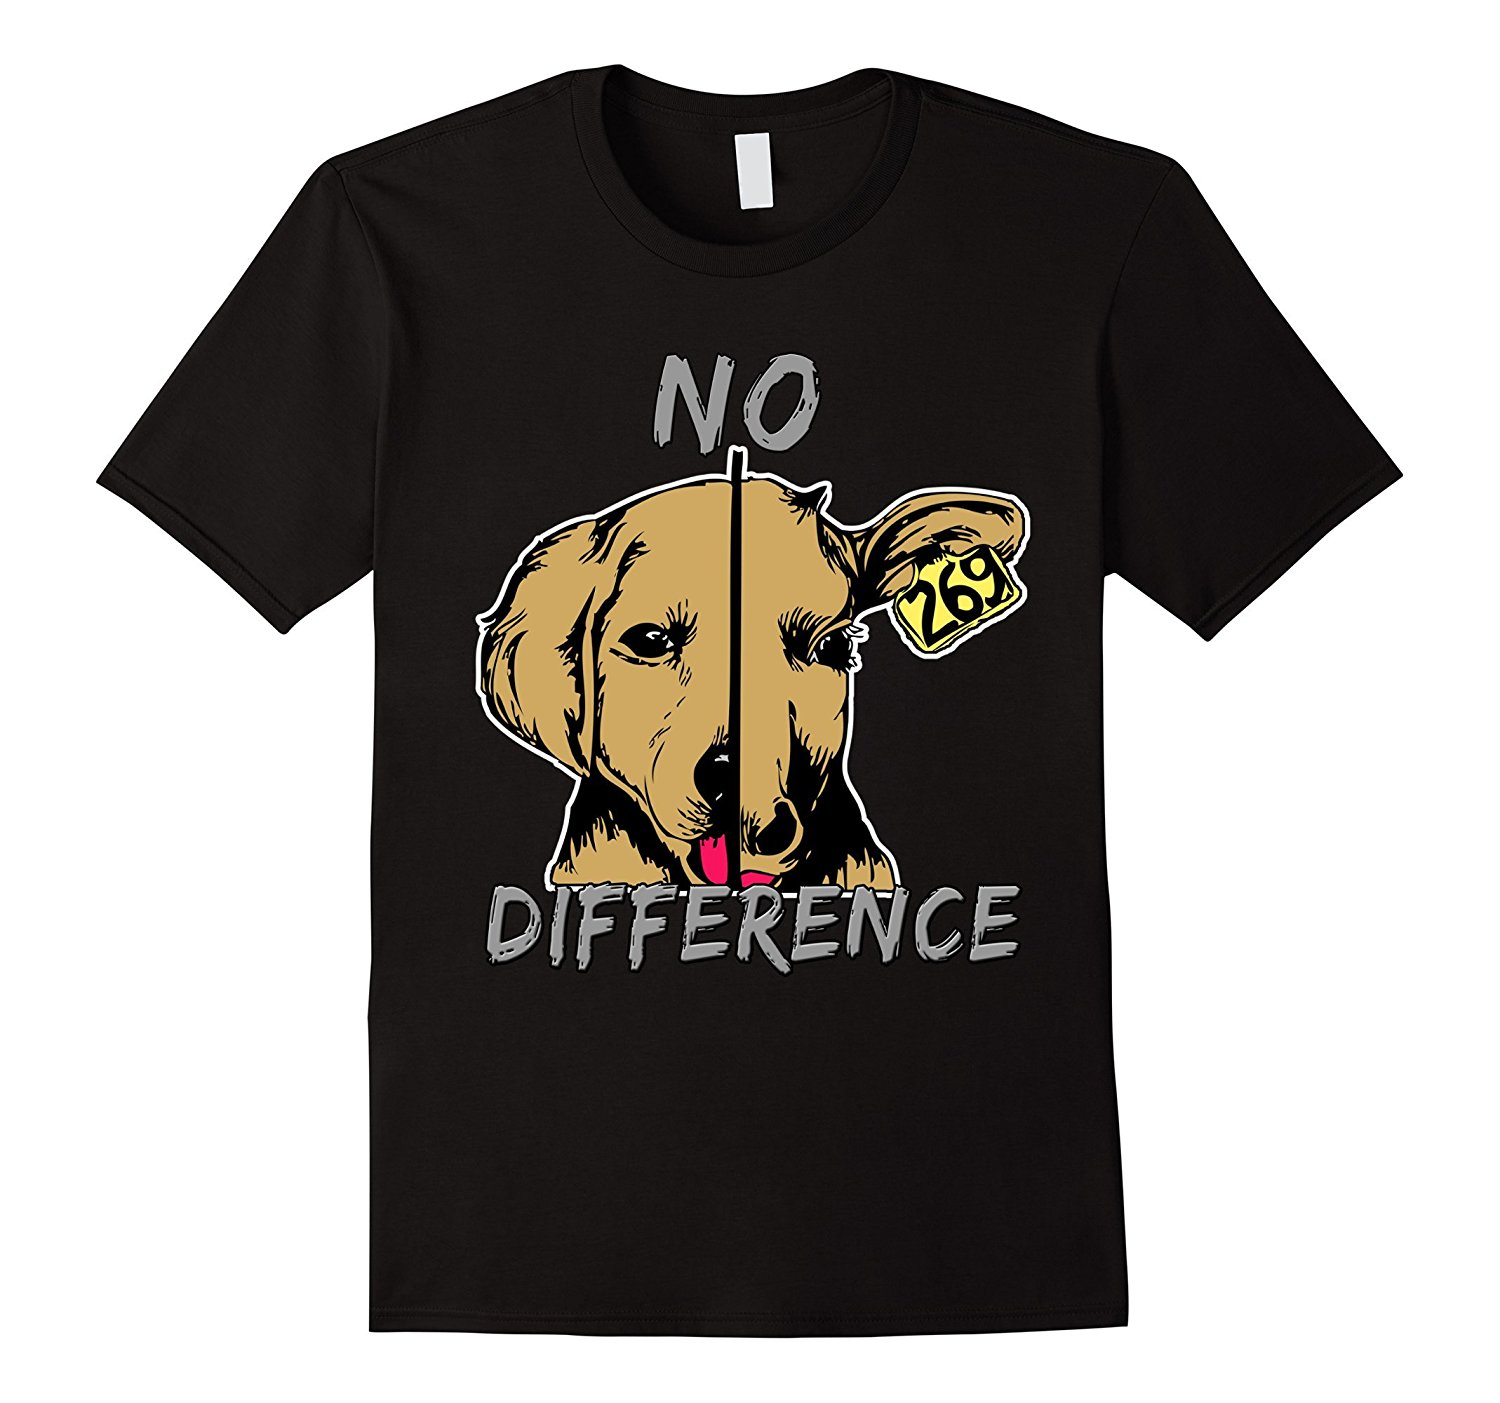 No Difference Dog Cow Vegan Vegetarian Healthy Living   T  -  Shirt   Tee   Shirt   Mens 2017 New   T     Shirts   Printing New 2017 Funny